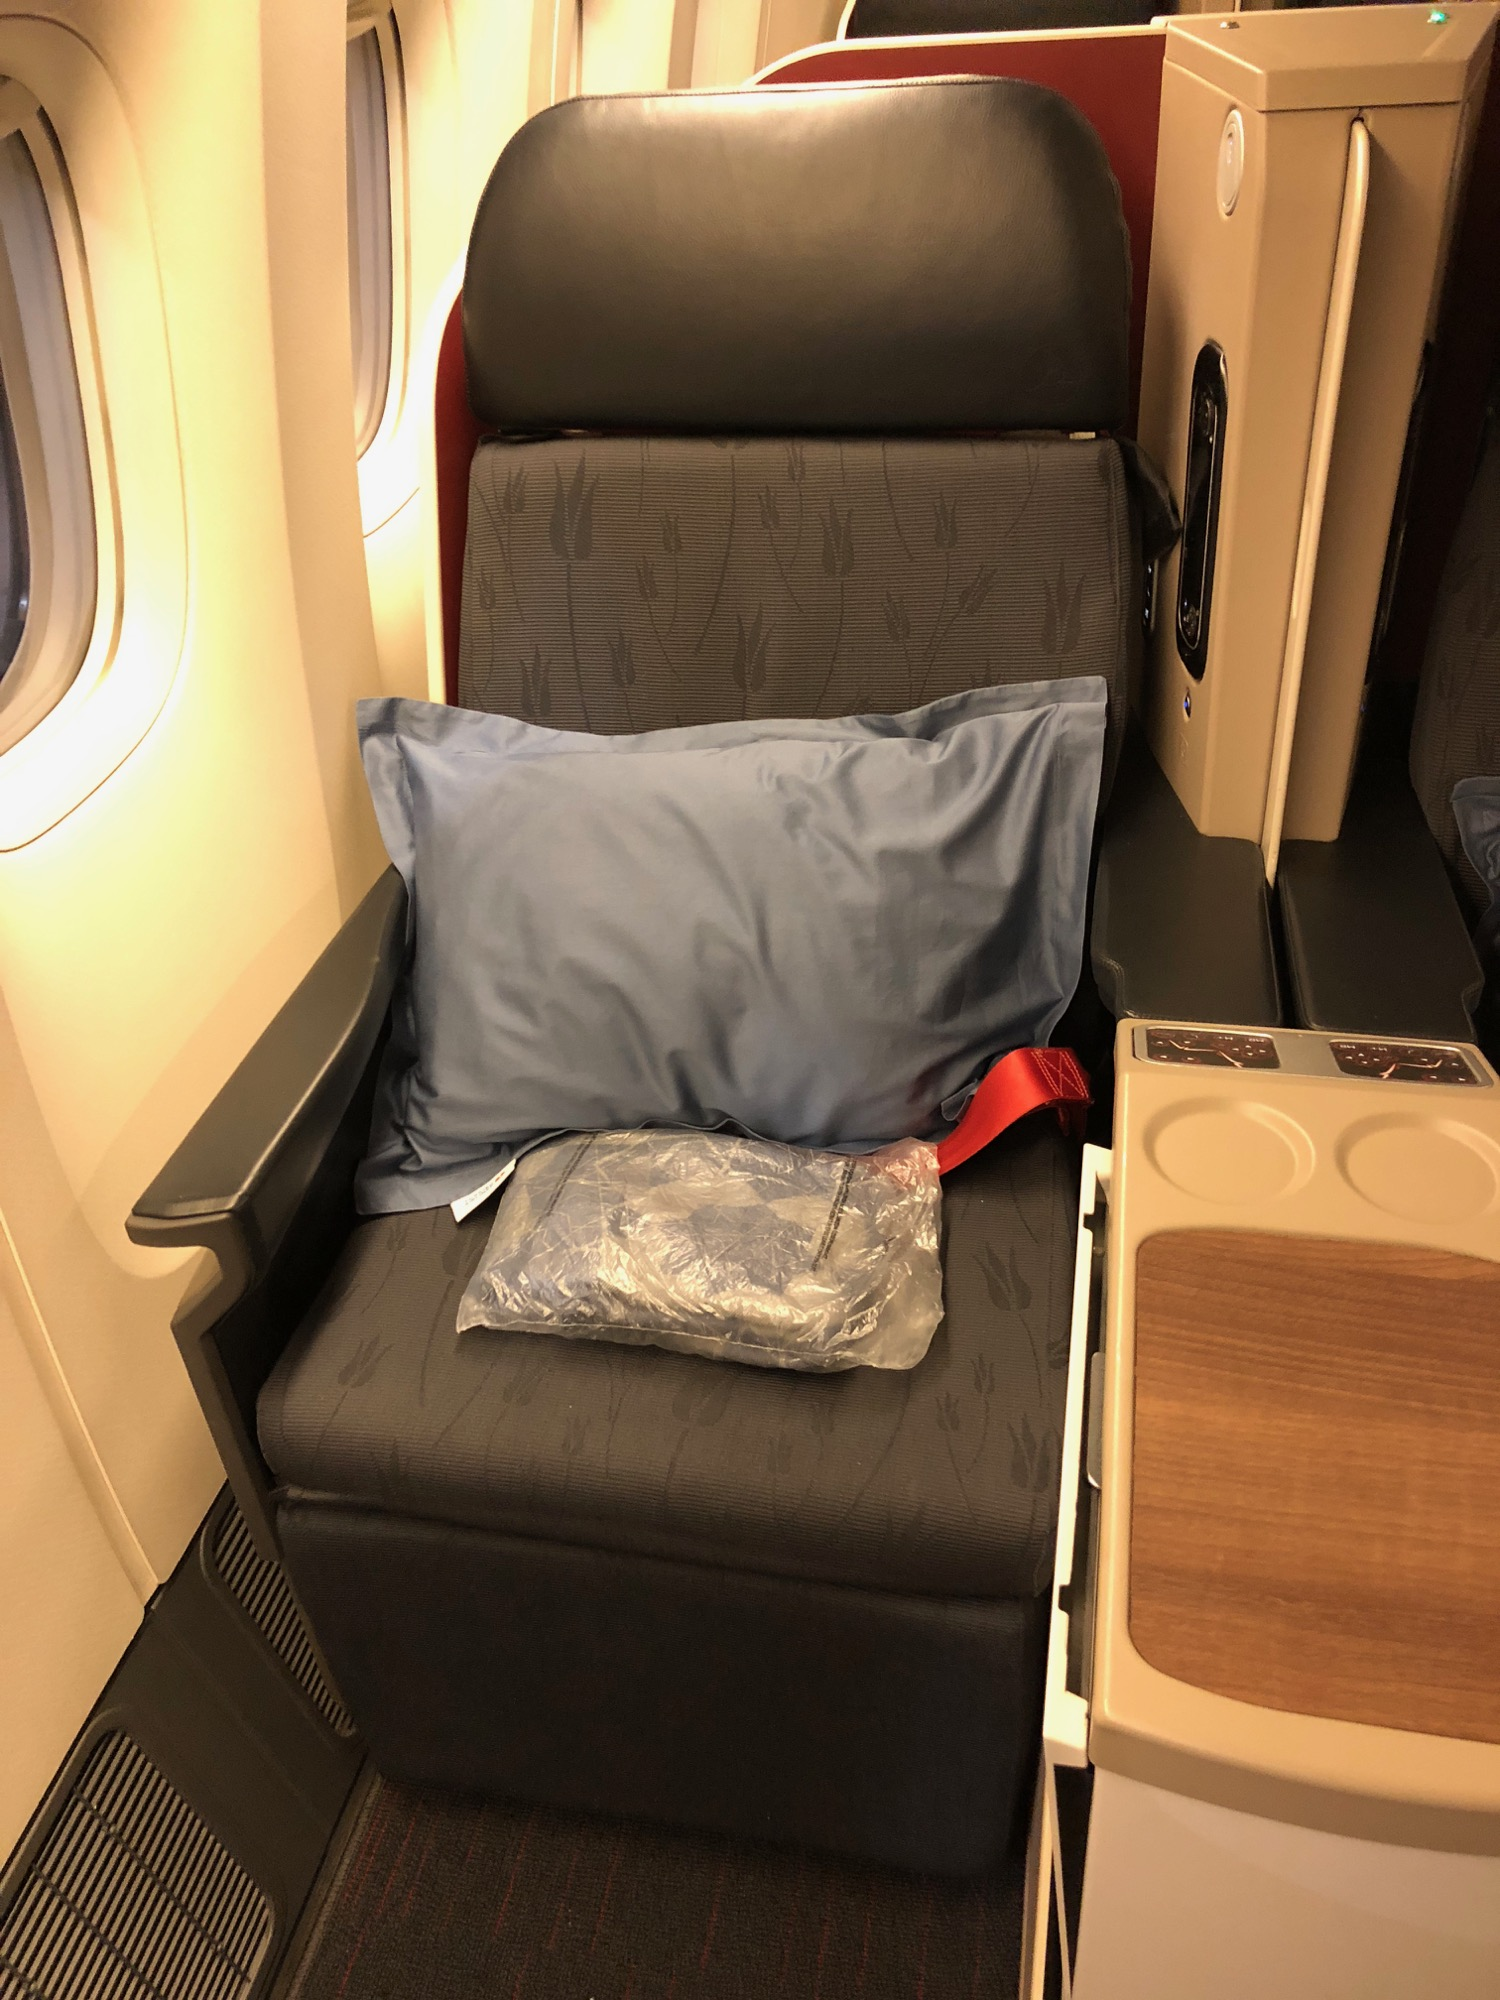 Turkish Airlines B777 Business Class